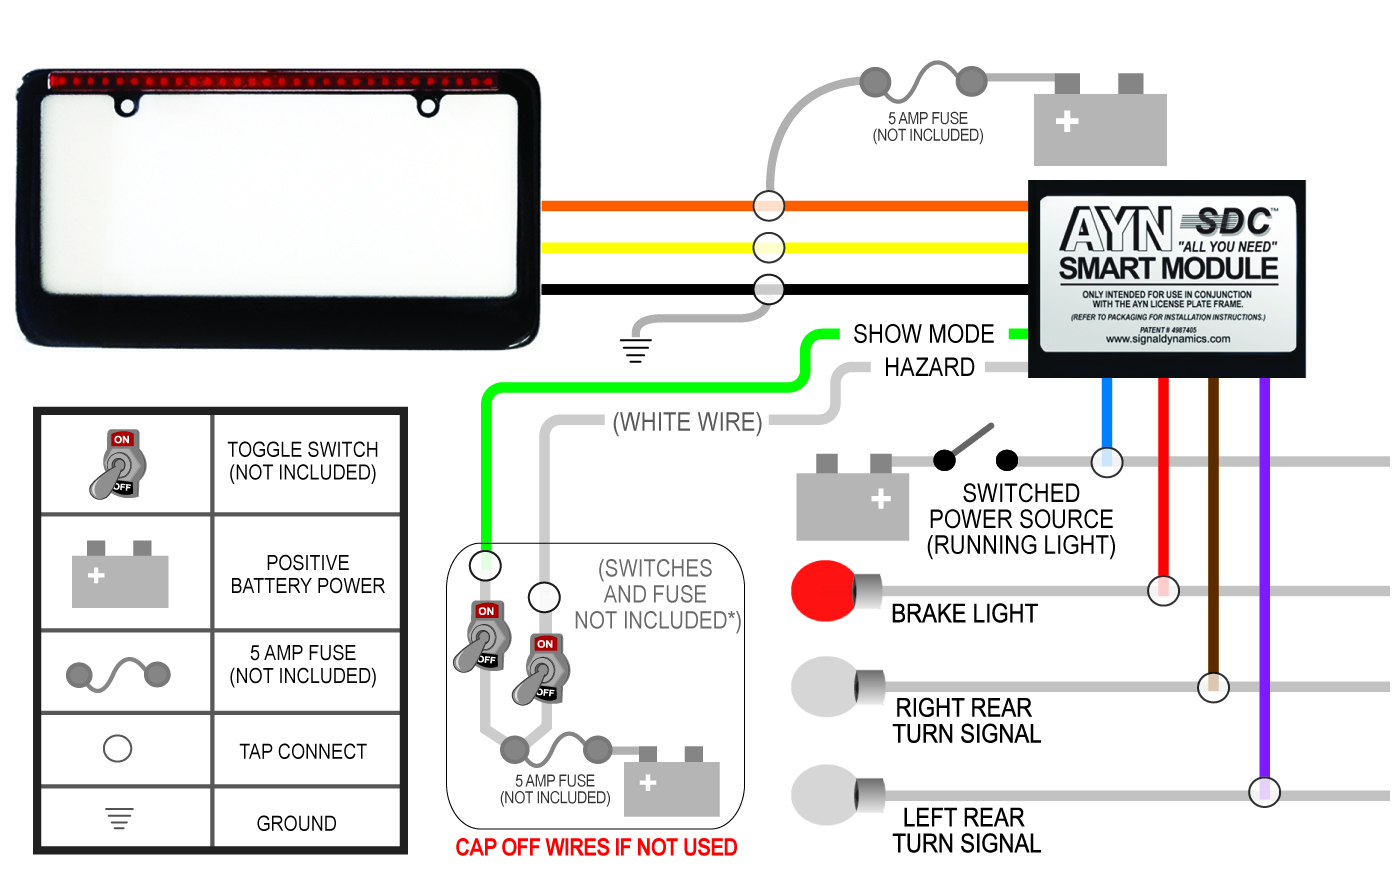 black auto wiring diagram?t=1399476781 black ayn automotive license plate frame & smart module combo Basic Turn Signal Wiring Diagram at couponss.co